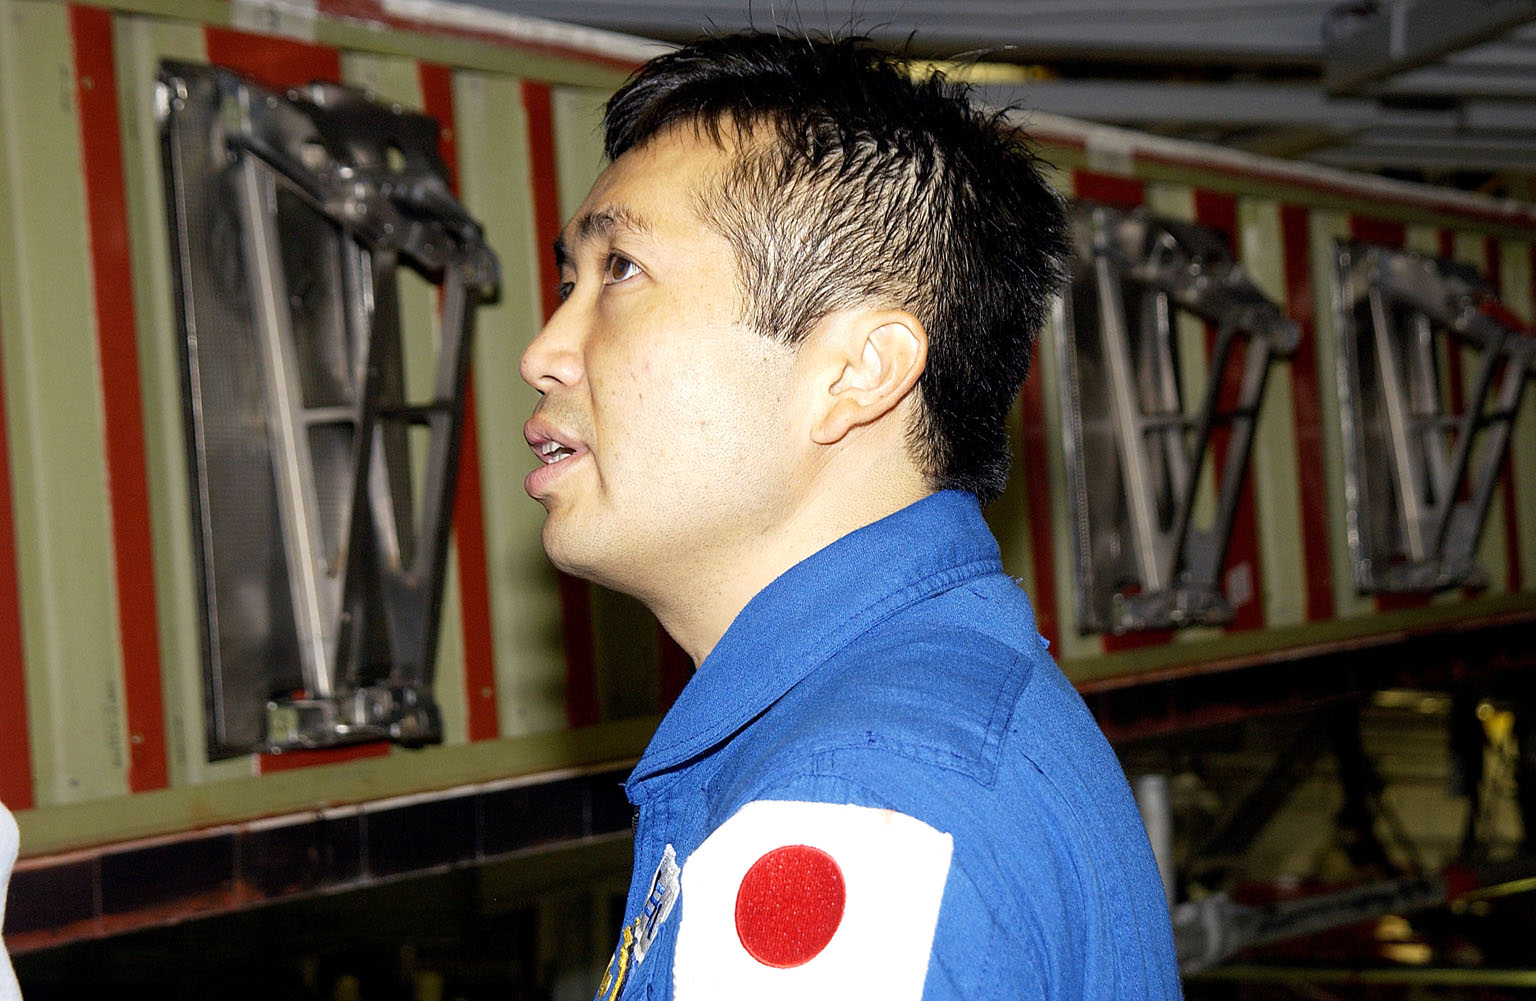 KENNEDY SPACE CENTER, FLA. - Japanese astronaut Koichi Wakata looks at the spars installed on the wing of the orbiter Atlantis. Reinforced Carbon Carbon (RCC) panels are mechanically attached to the wing via the spars - a series of floating joints - to reduce loading on the panels caused by wing deflections. The aluminum and the metallic attachments are protected from exceeding temperature limits by internal insulation.